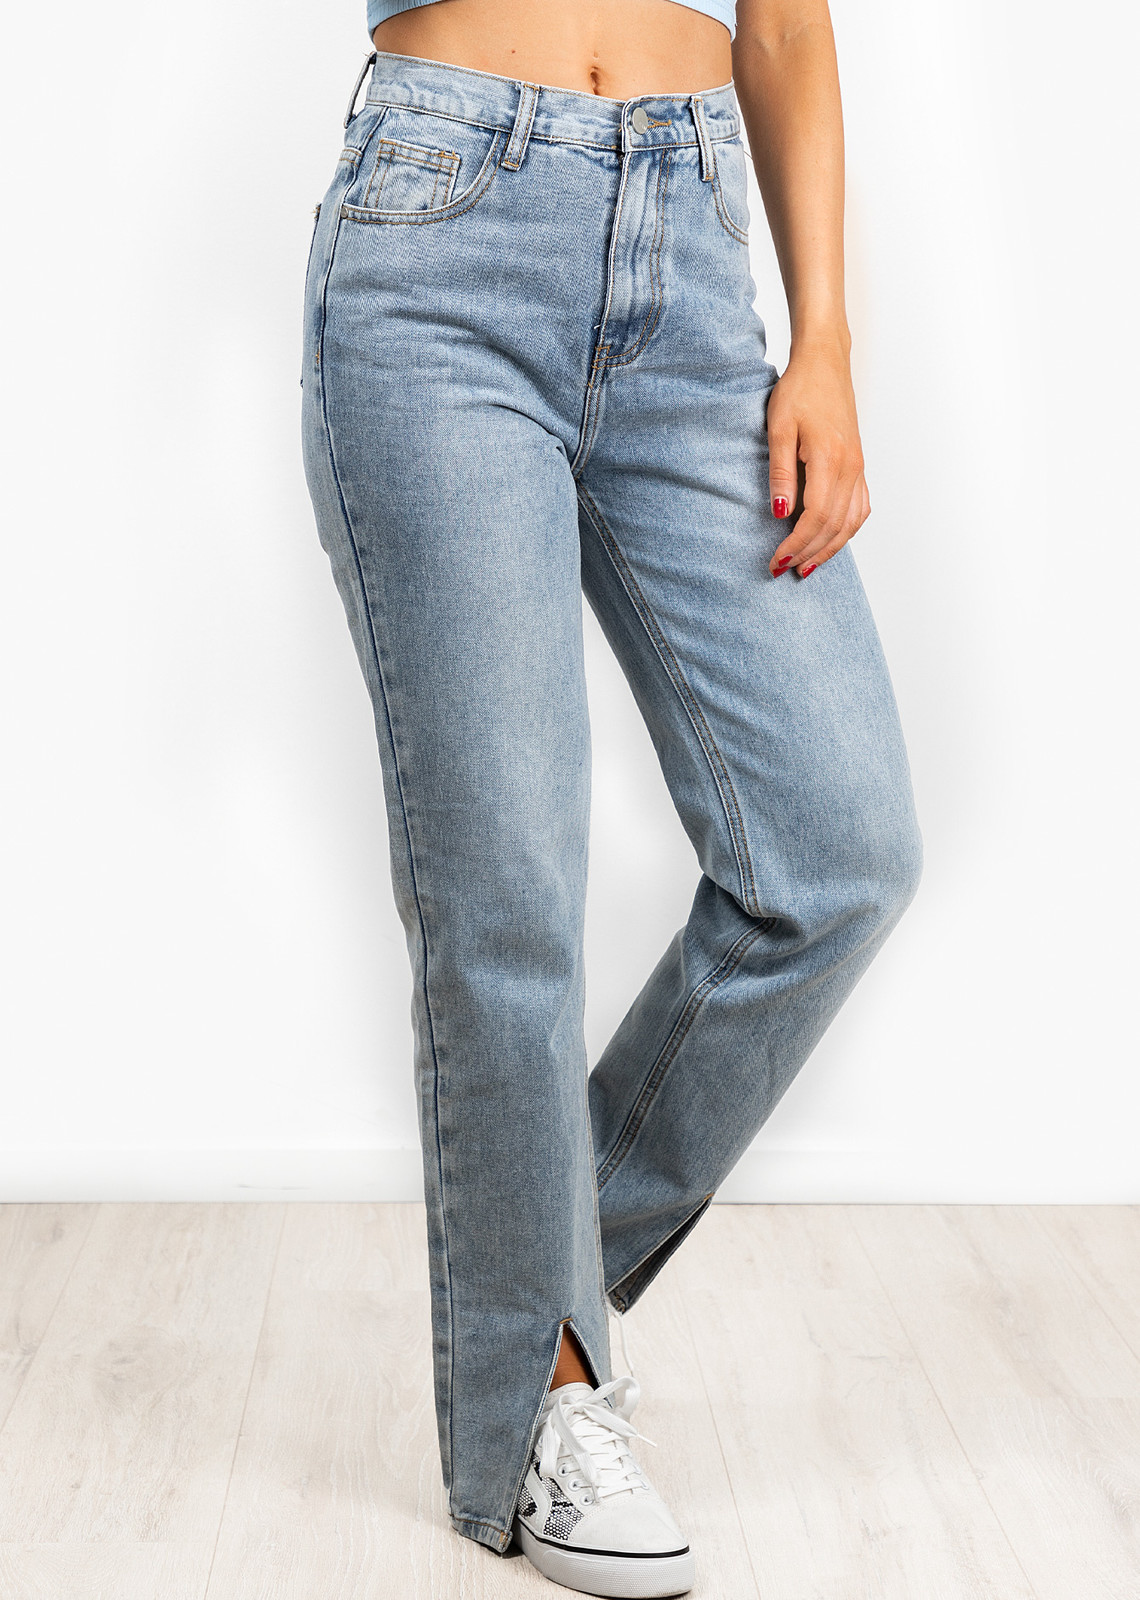 Denim jeans split Molly